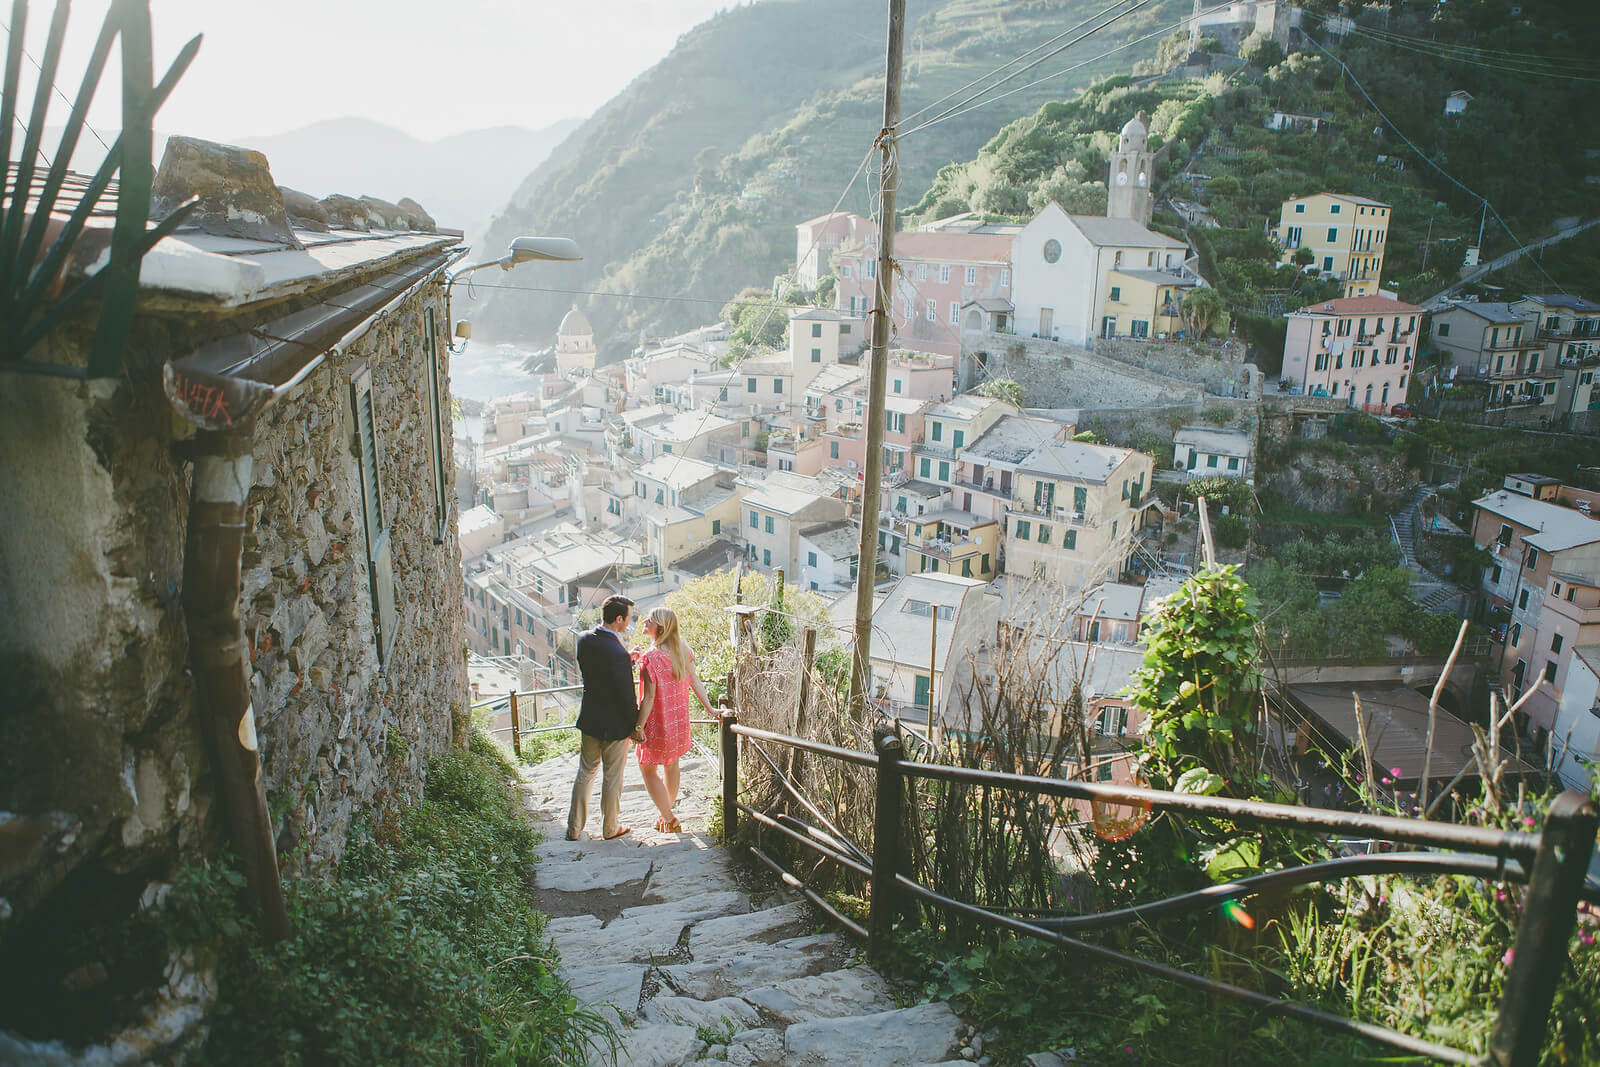 Couple holding hands and walking down stairway in Cinque Terre, Italy